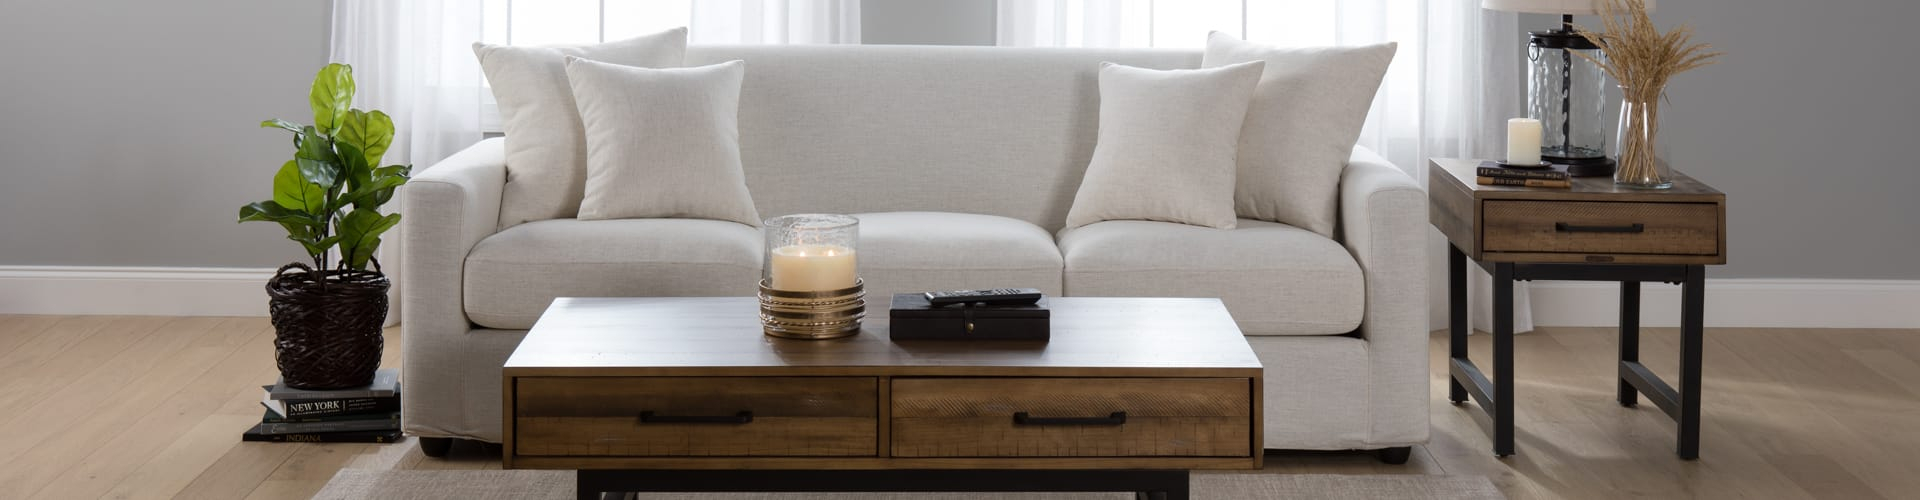 Magnolia Home Retailer | Wg&r Furniture Stores In Wisconsin Throughout Magnolia Home Homestead Sofa Chairs By Joanna Gaines (Image 19 of 25)